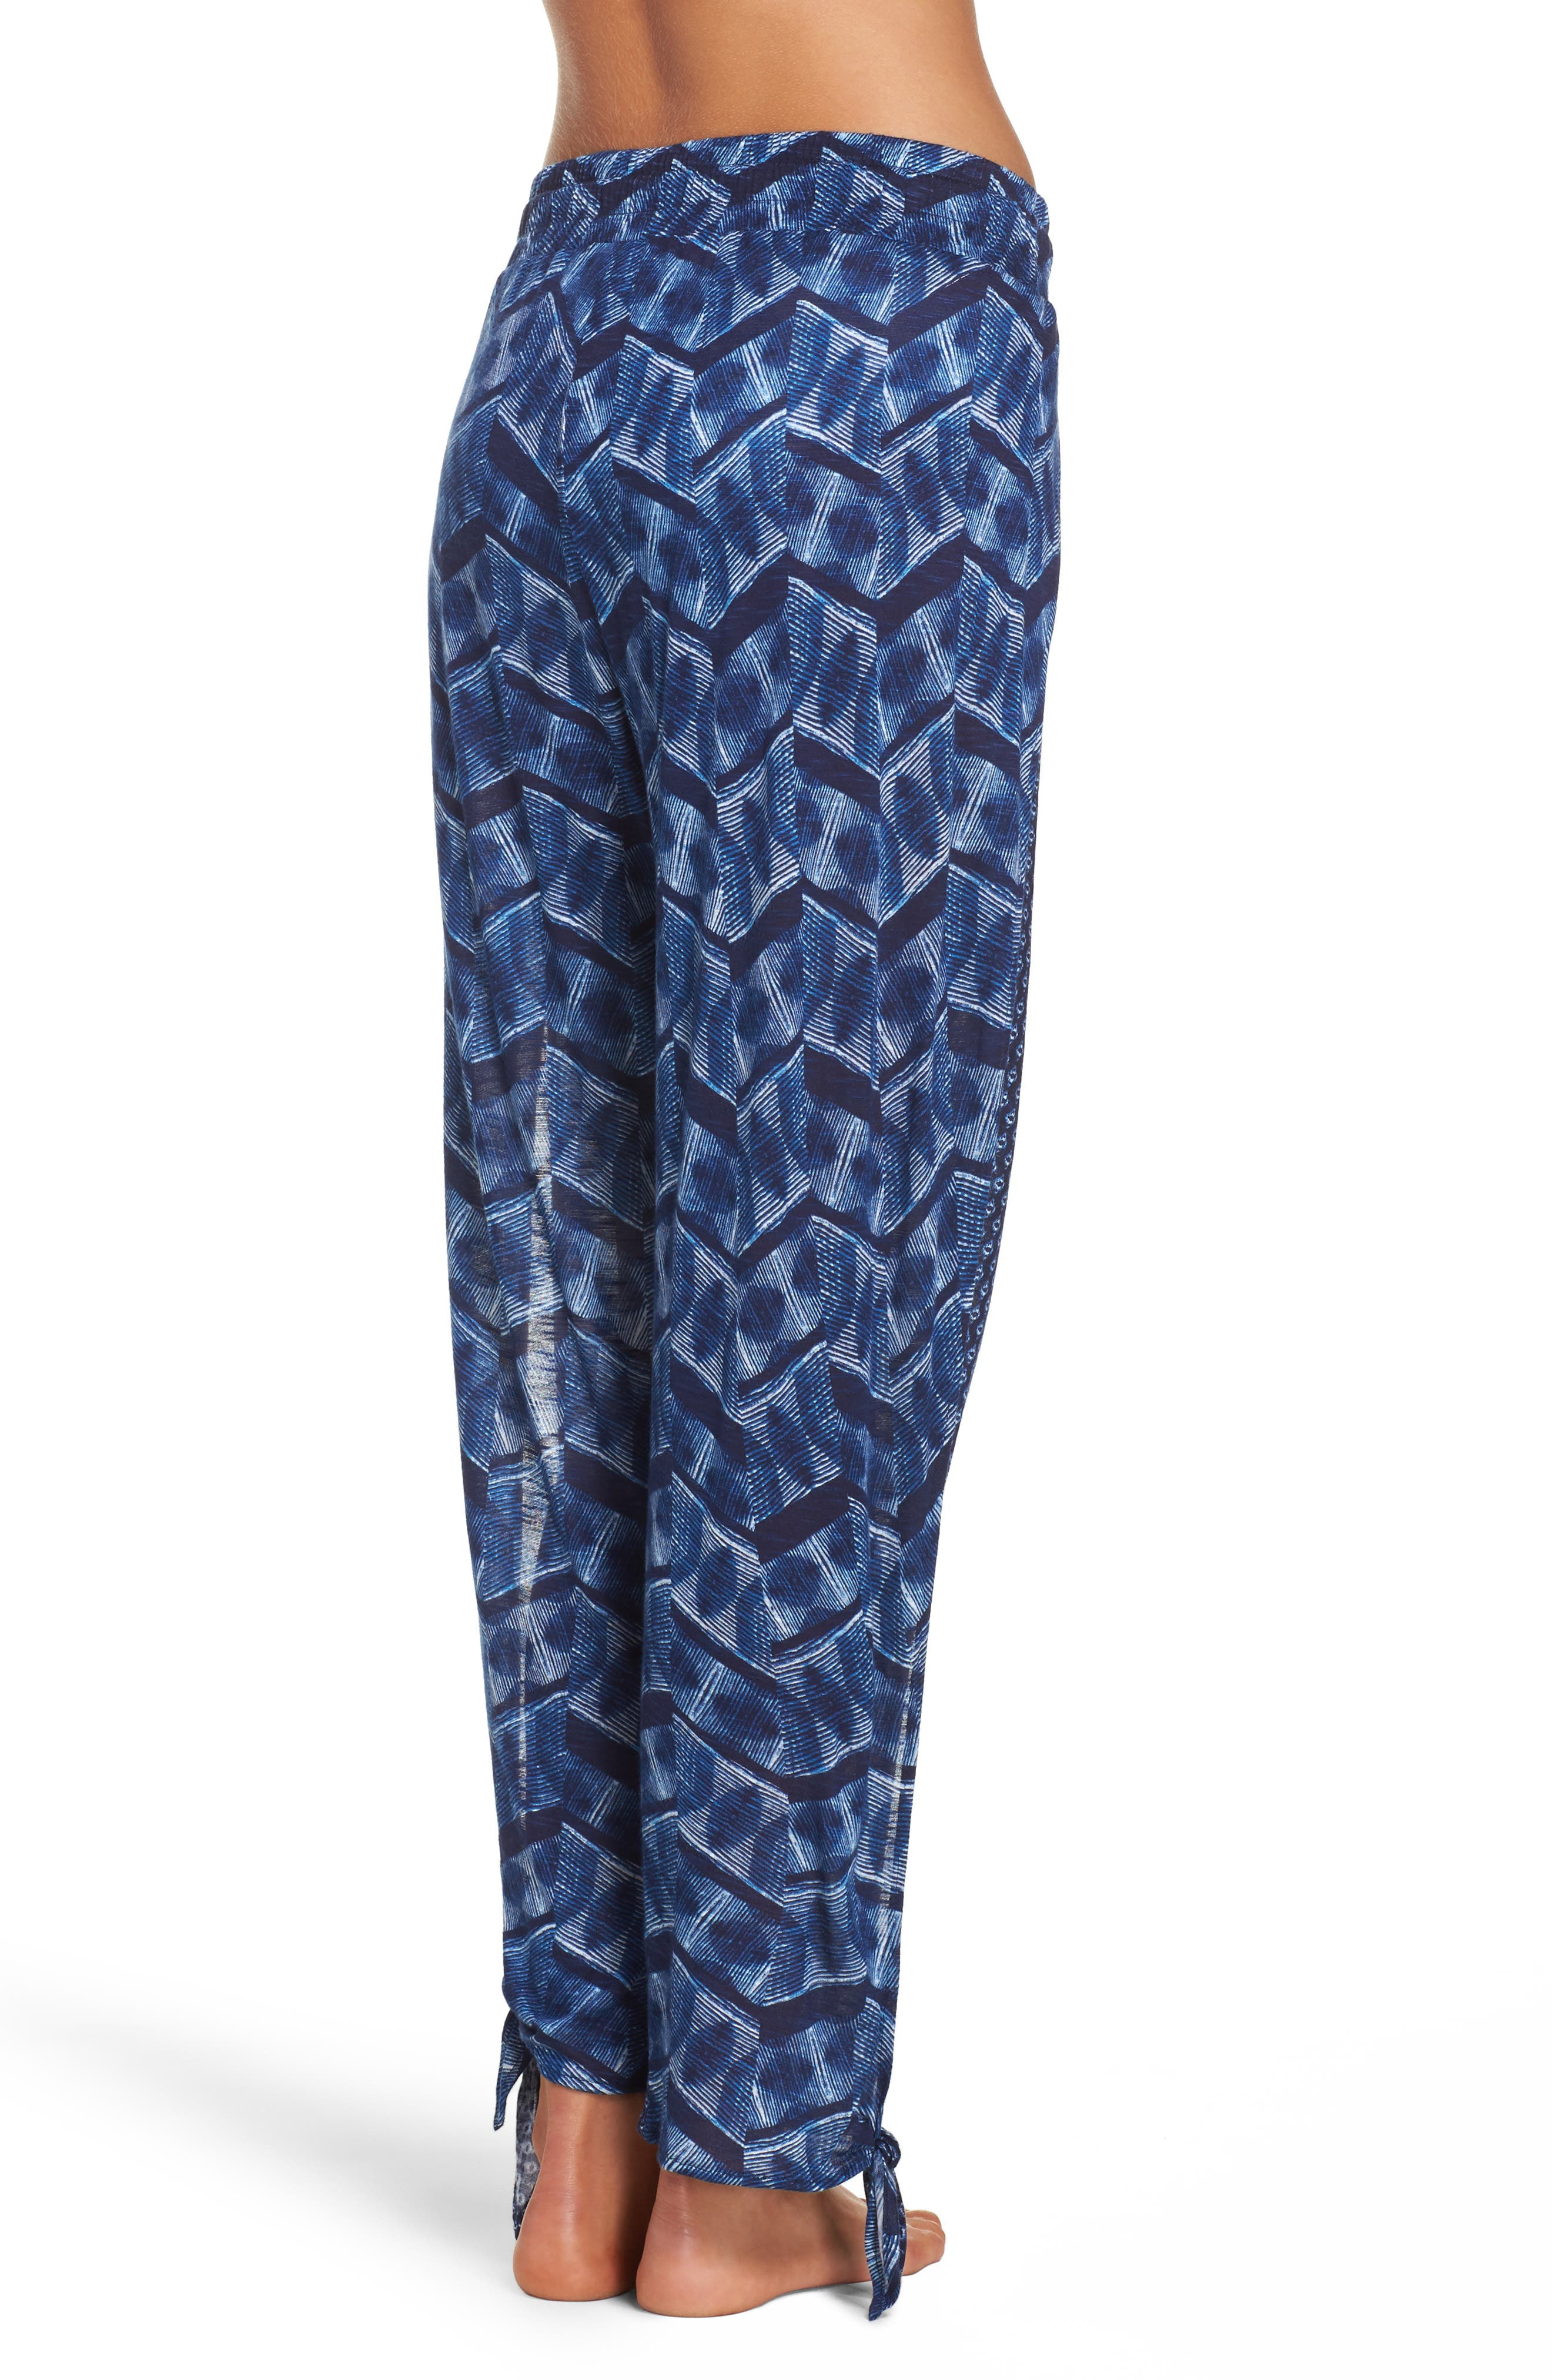 Nomad Ankle Tie Cover-Up Pants,                             Alternate thumbnail 2, color,                             410